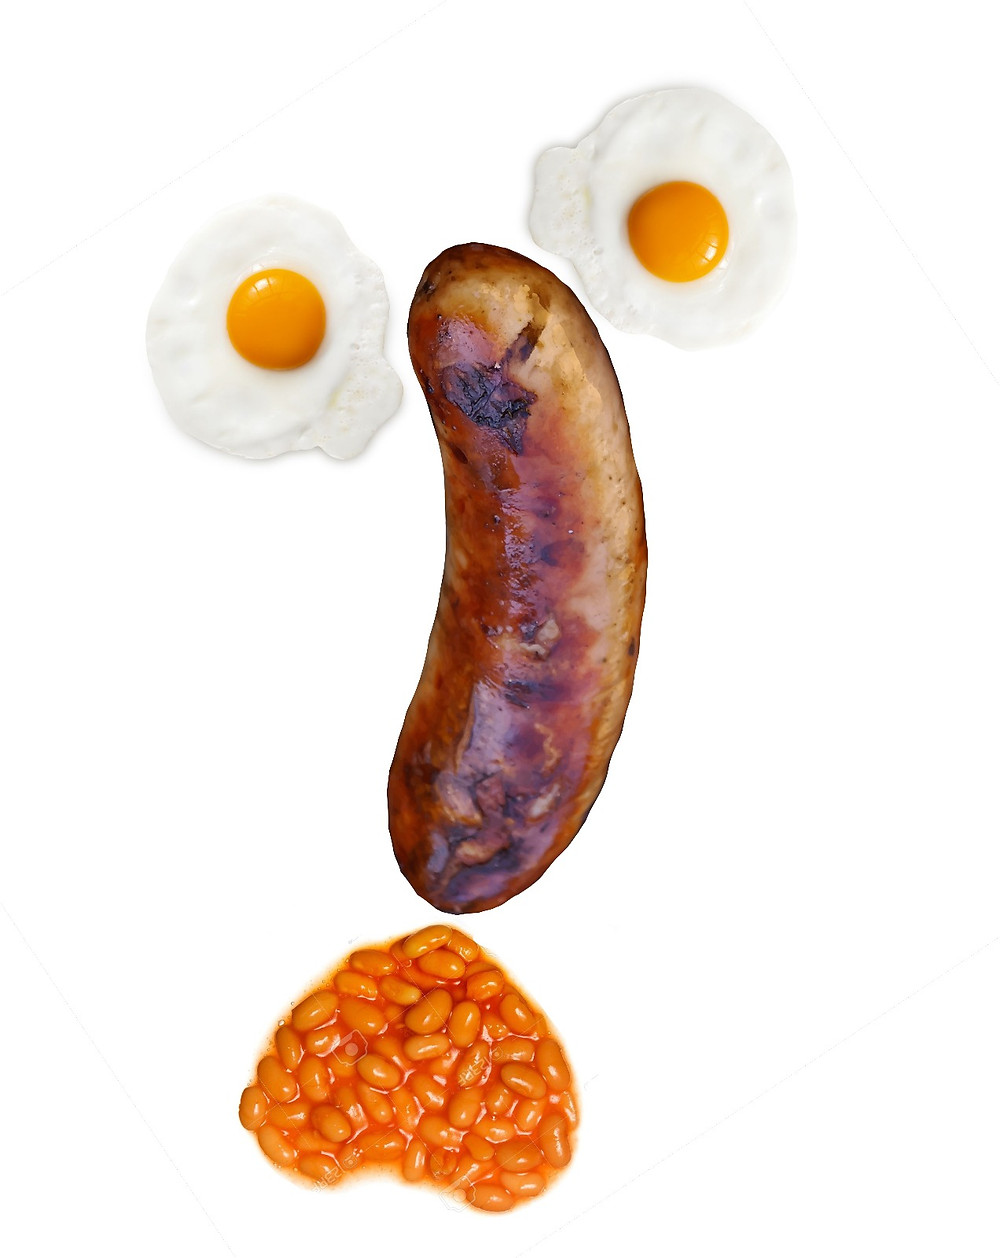 A breakfast face - with egg eyes, a sausage long nose and baked bean mouth!